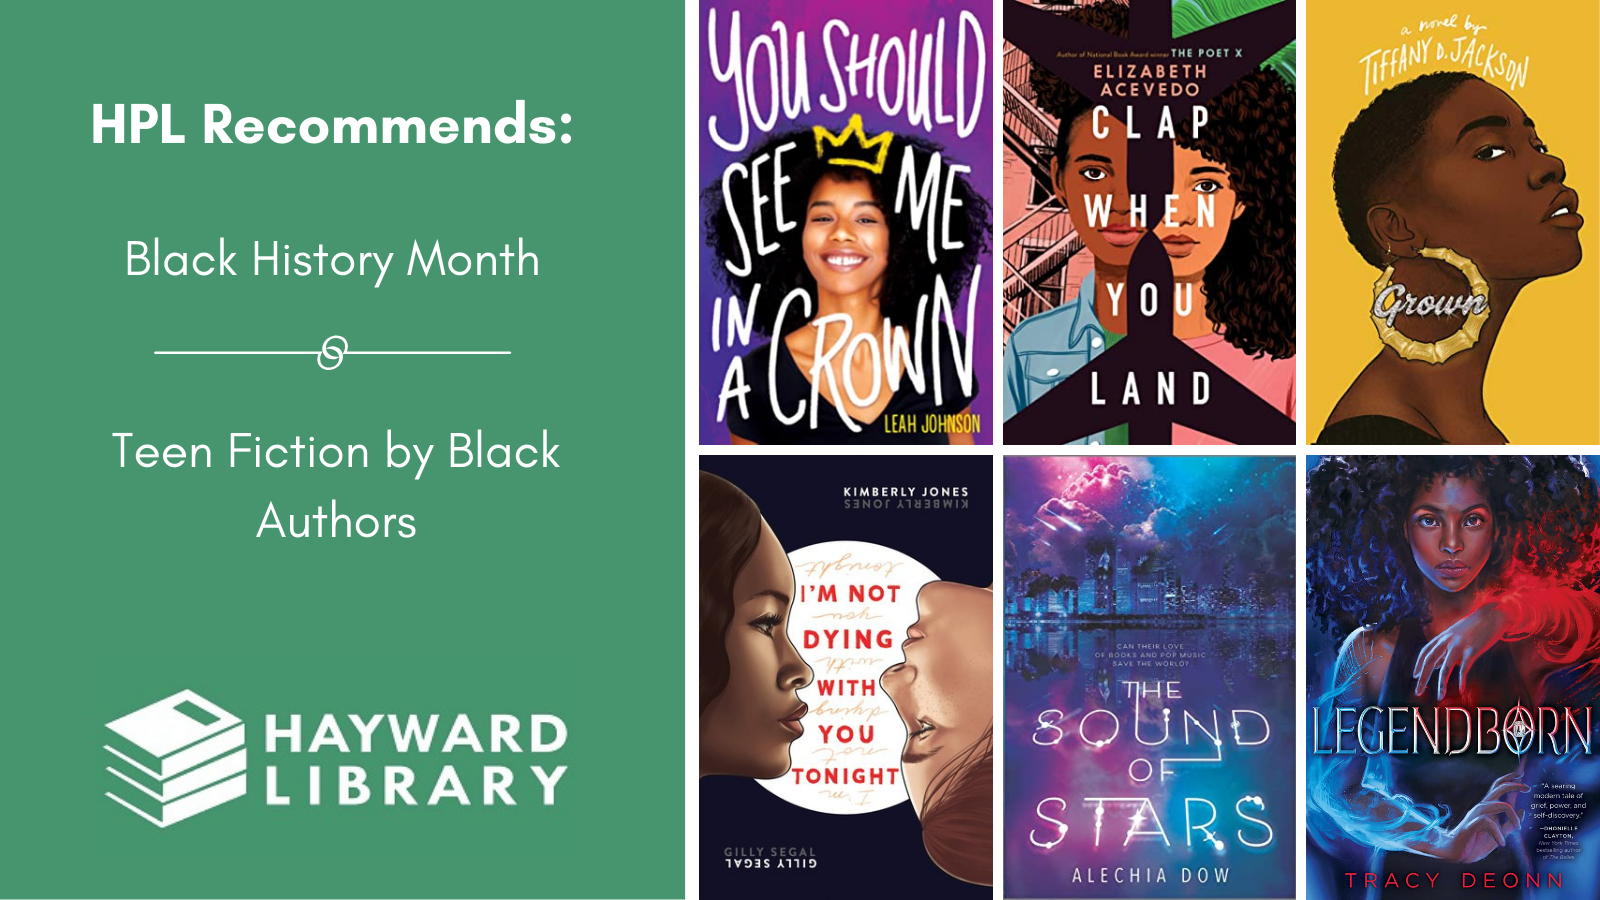 Collage of book covers with a green block on left side that says HPL Recommends, Black History Month, Teen Fiction by Black Authors in white text, with Hayward Library logo below it.